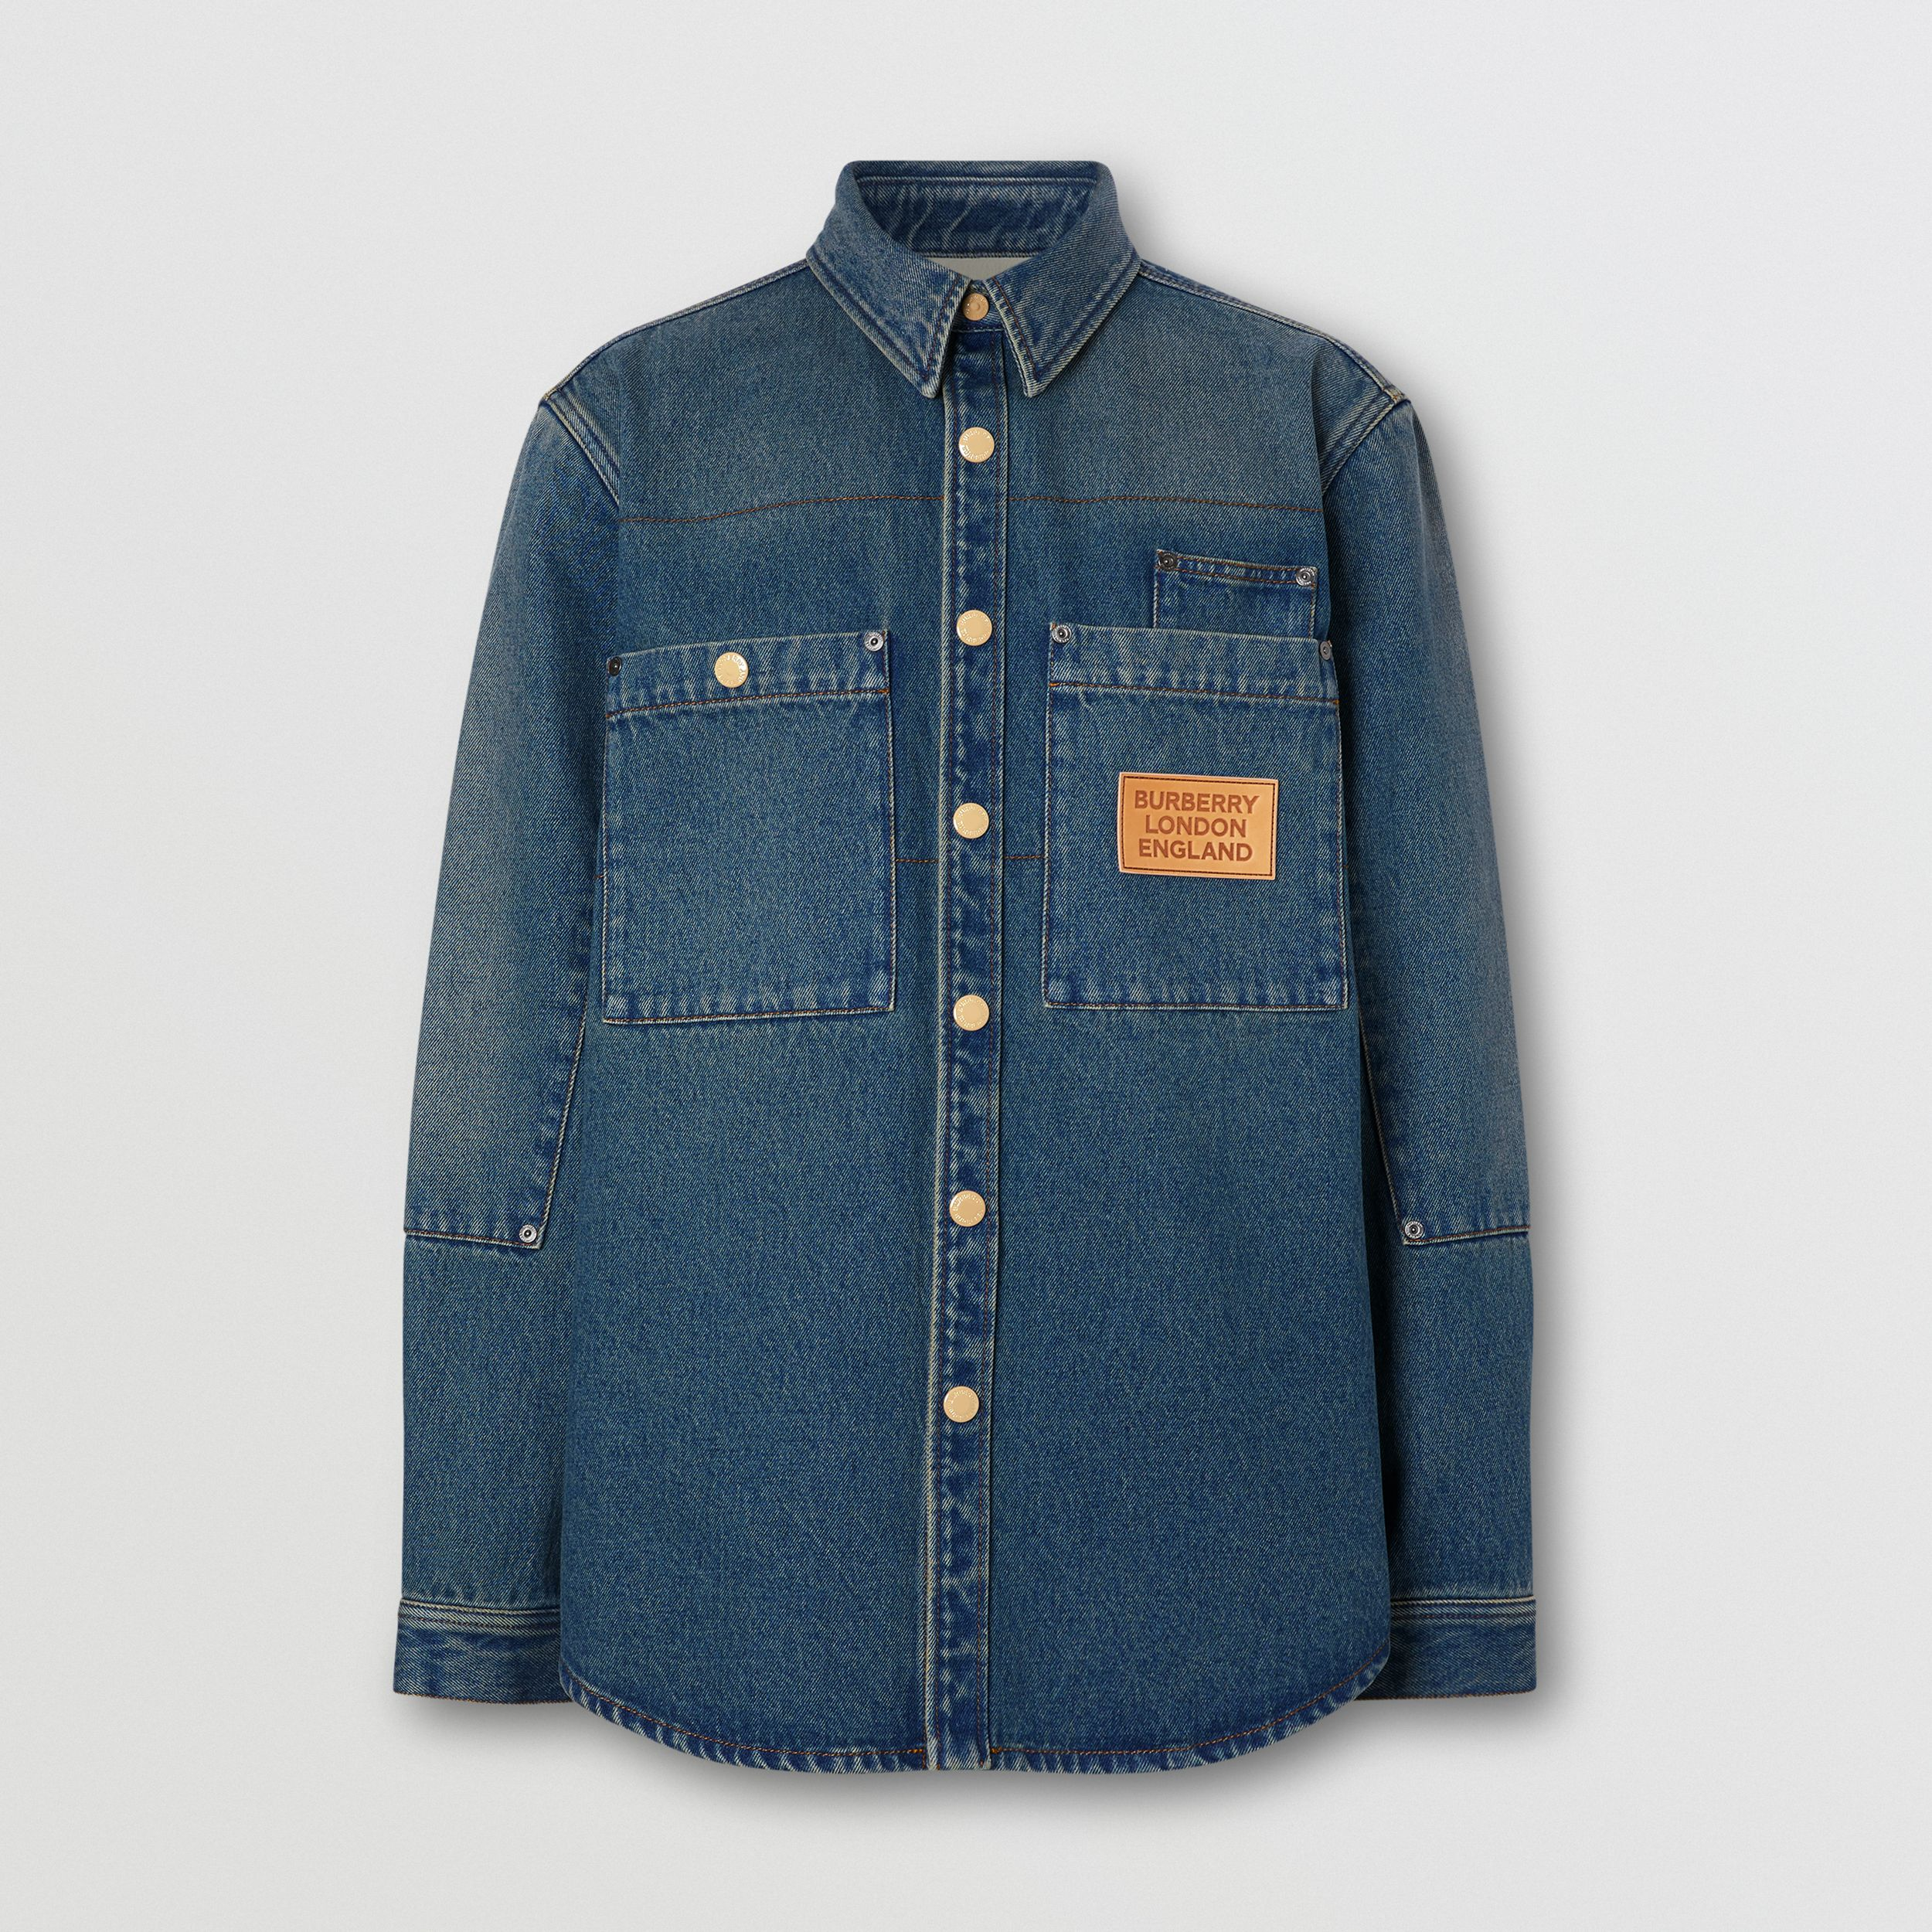 Logo Appliqué Denim Shirt in Indigo - Men | Burberry - 4